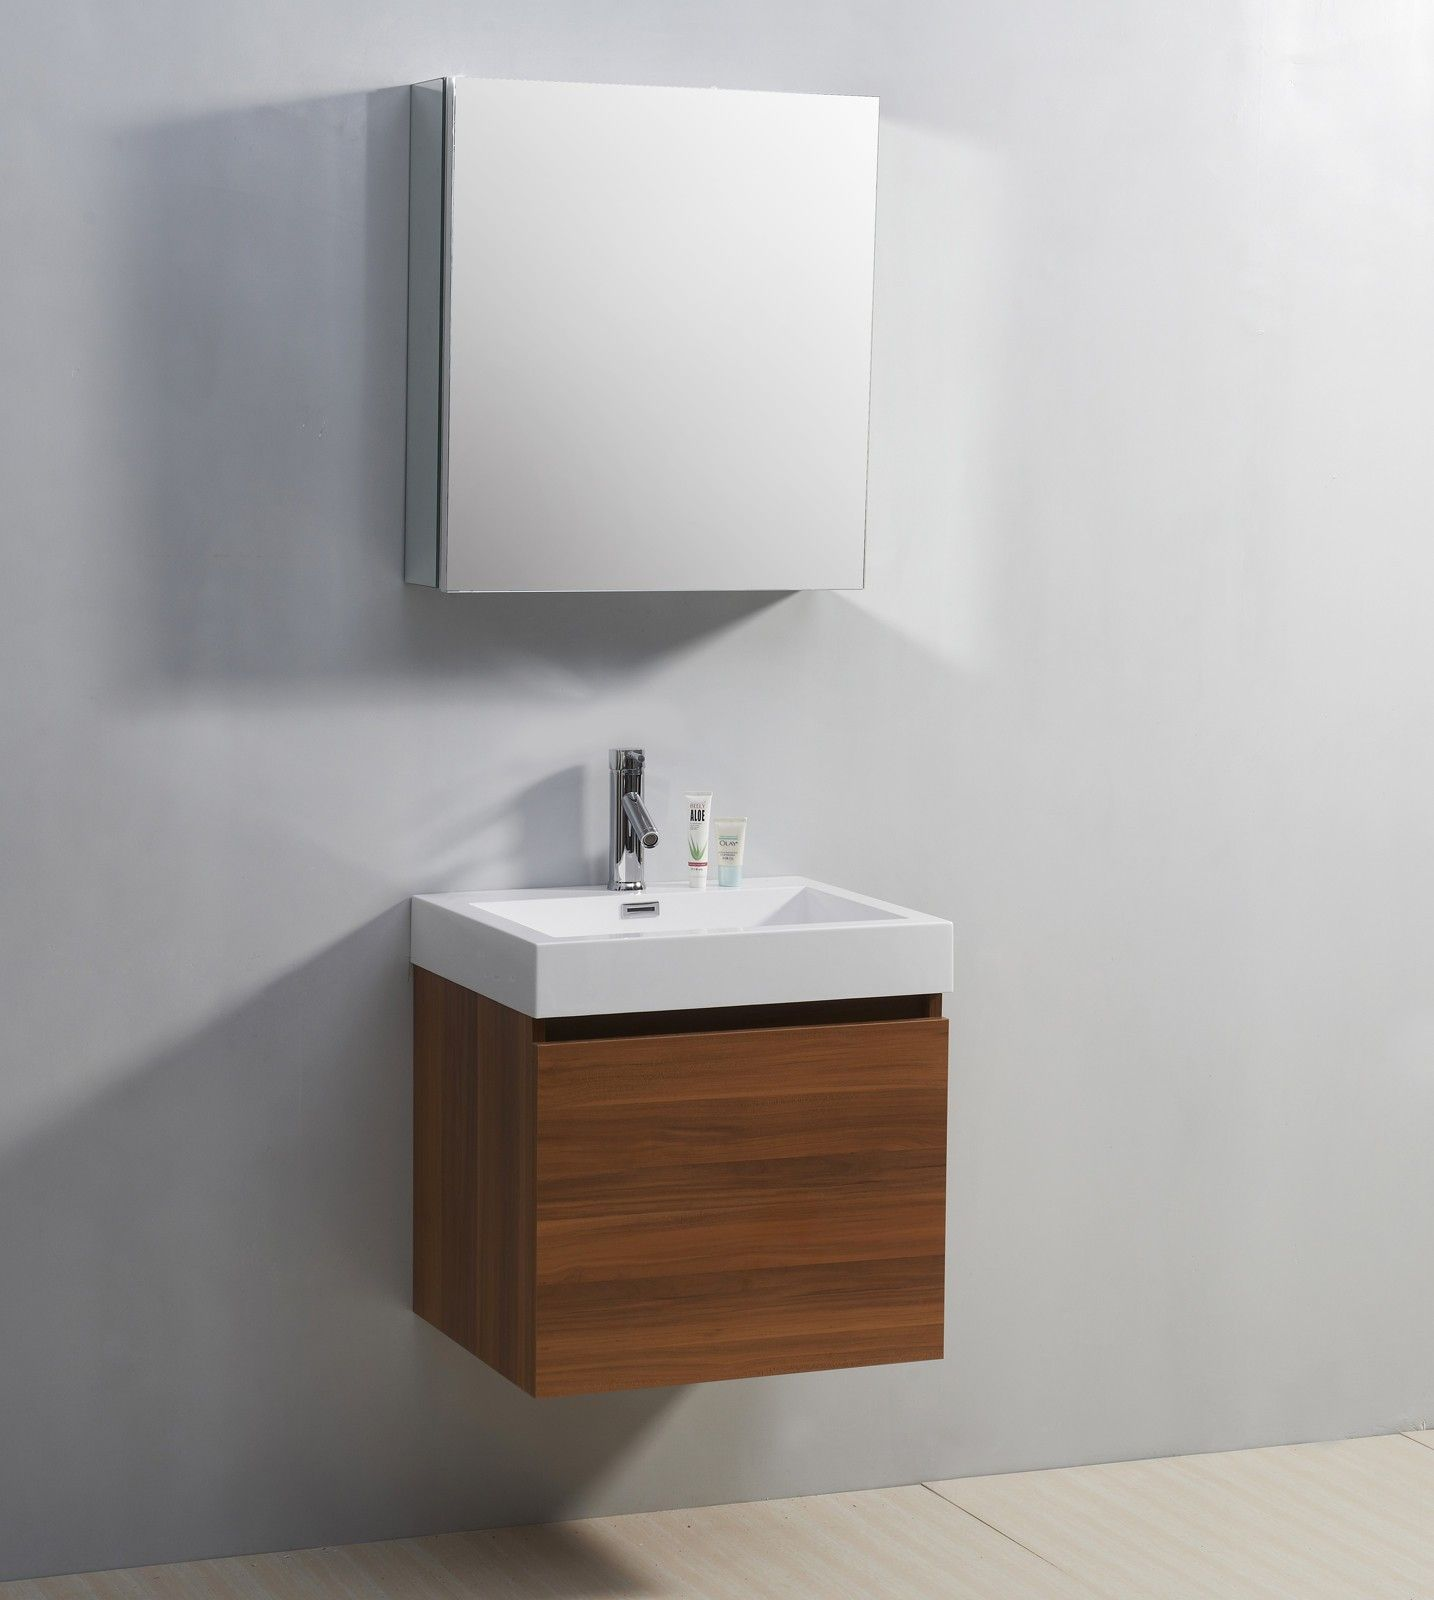 Stylish And Classy Floating Bathroom Vanity Darbylanefurniture Com In 2020 Floating Bathroom Vanities Small Bathroom Sinks Small Bathroom Vanities